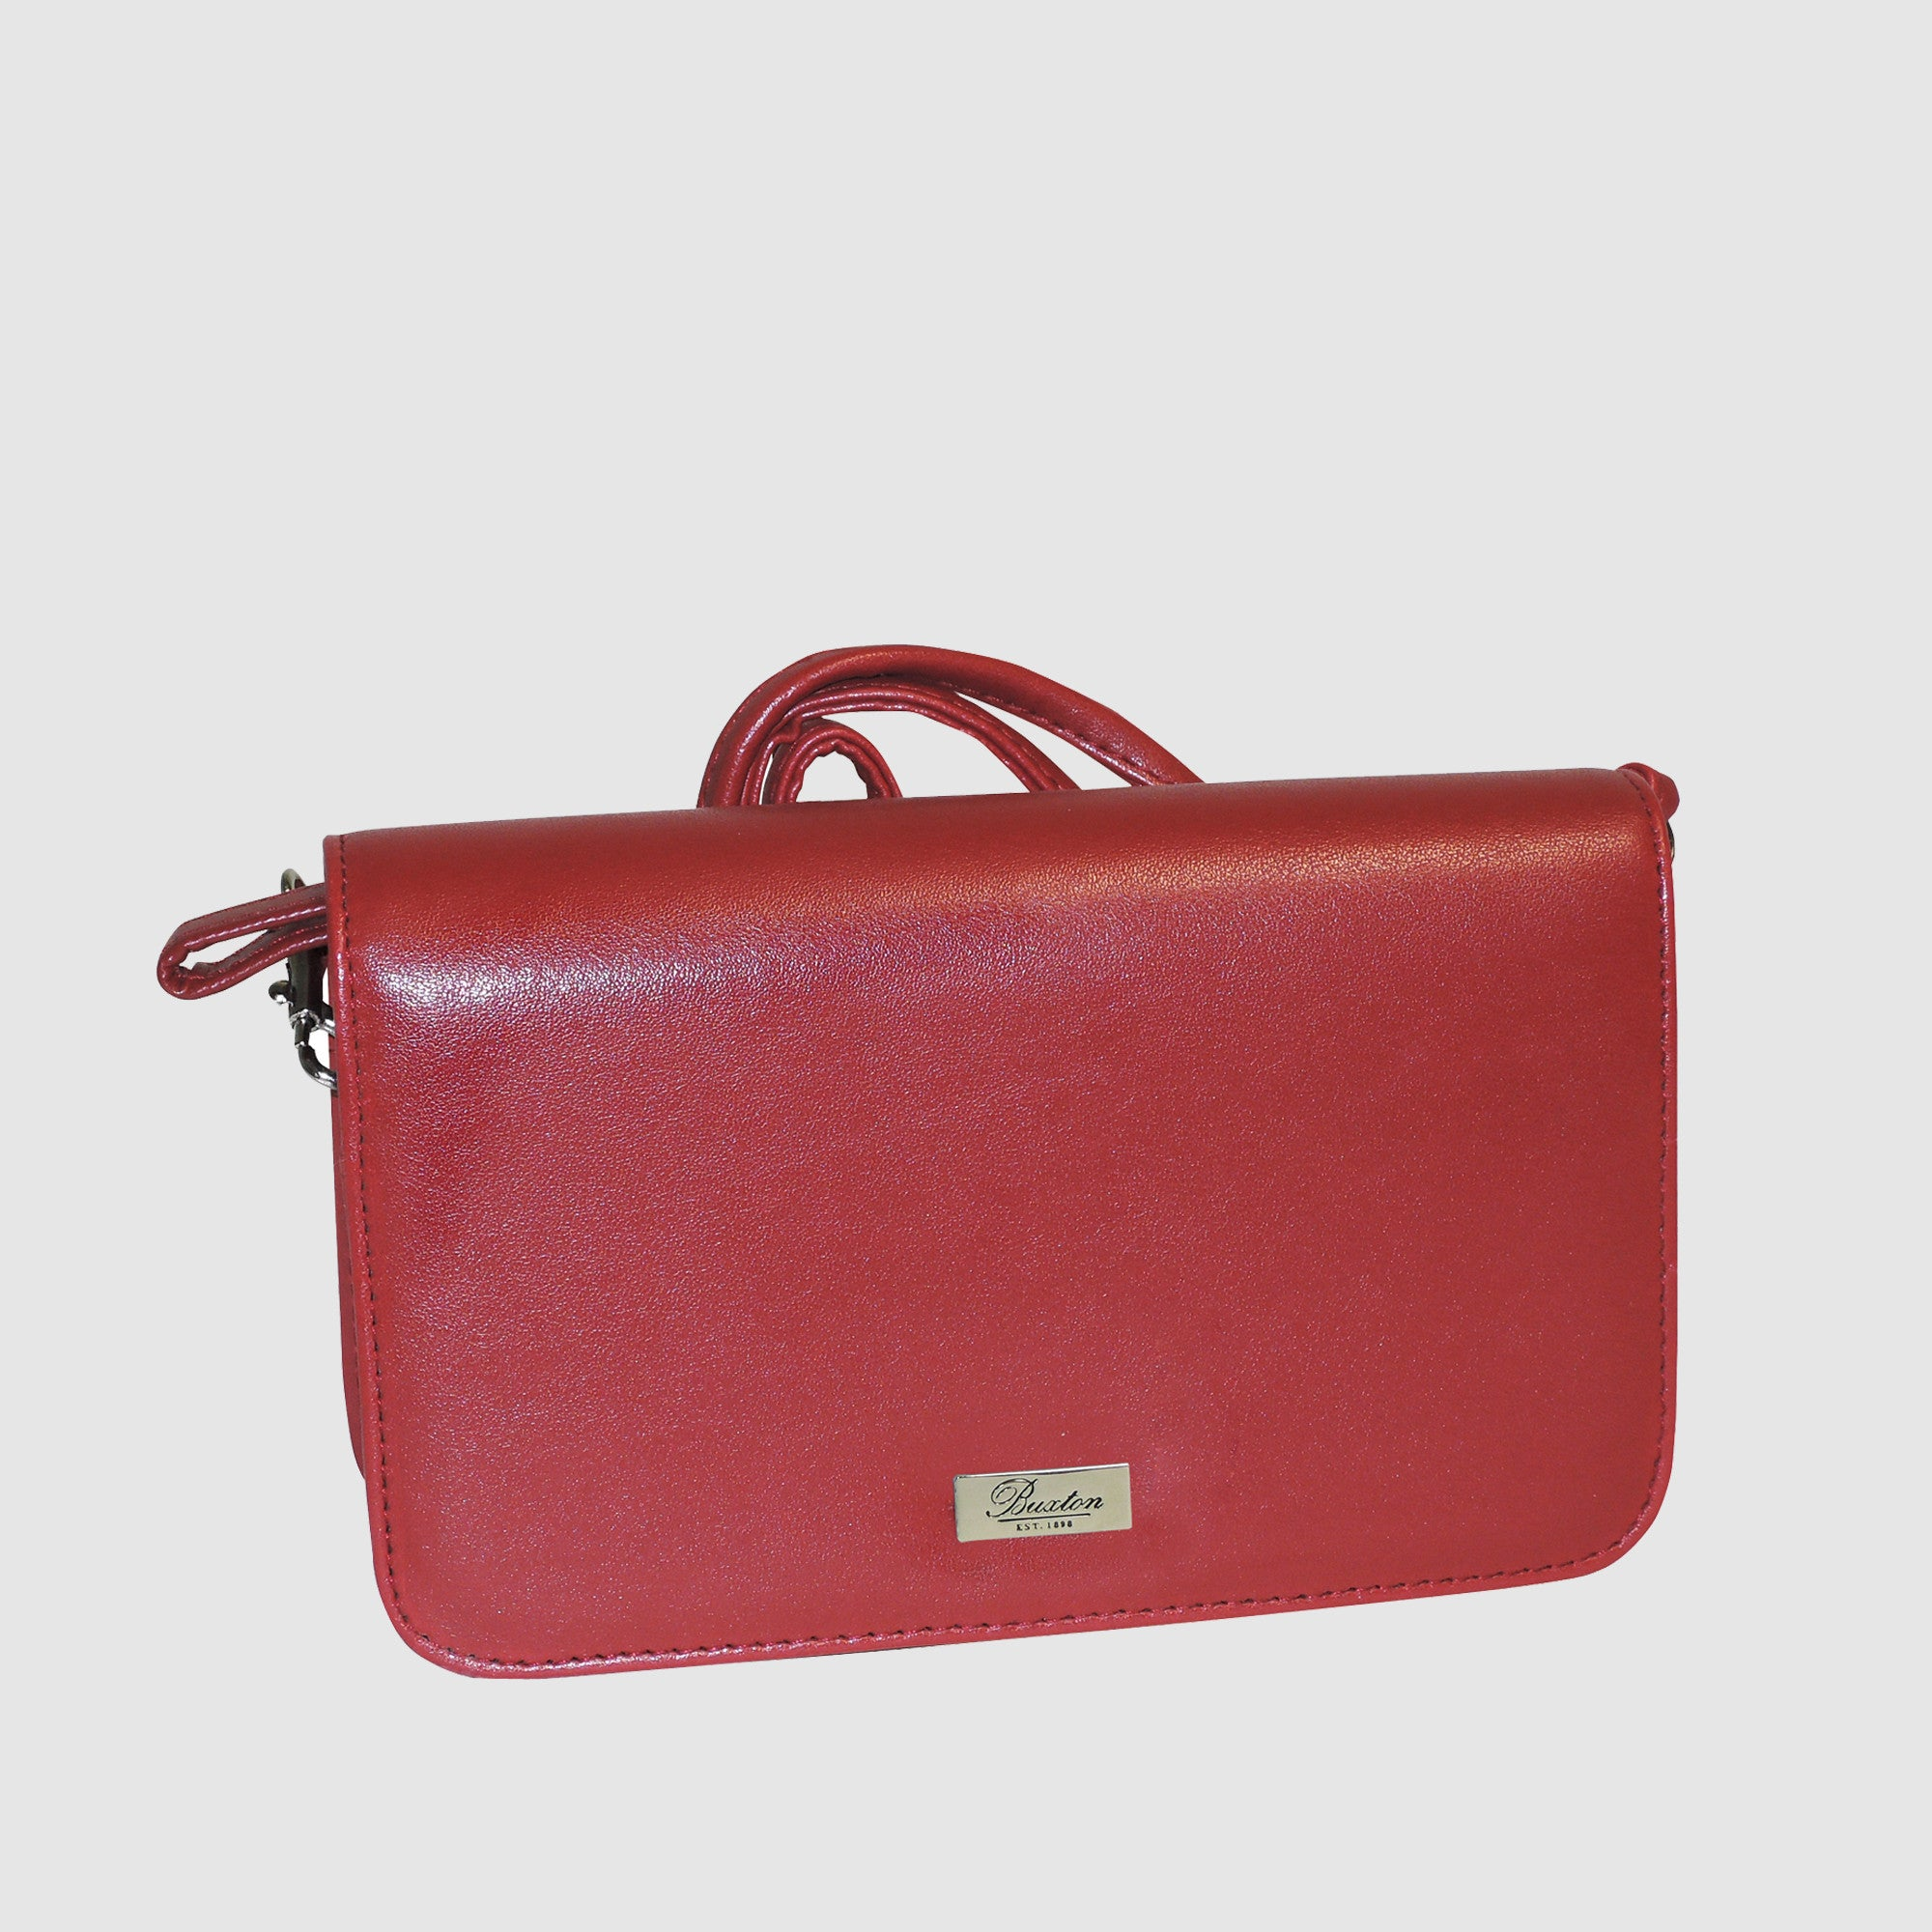 Mini Bag - Check Clutch On A String - Red